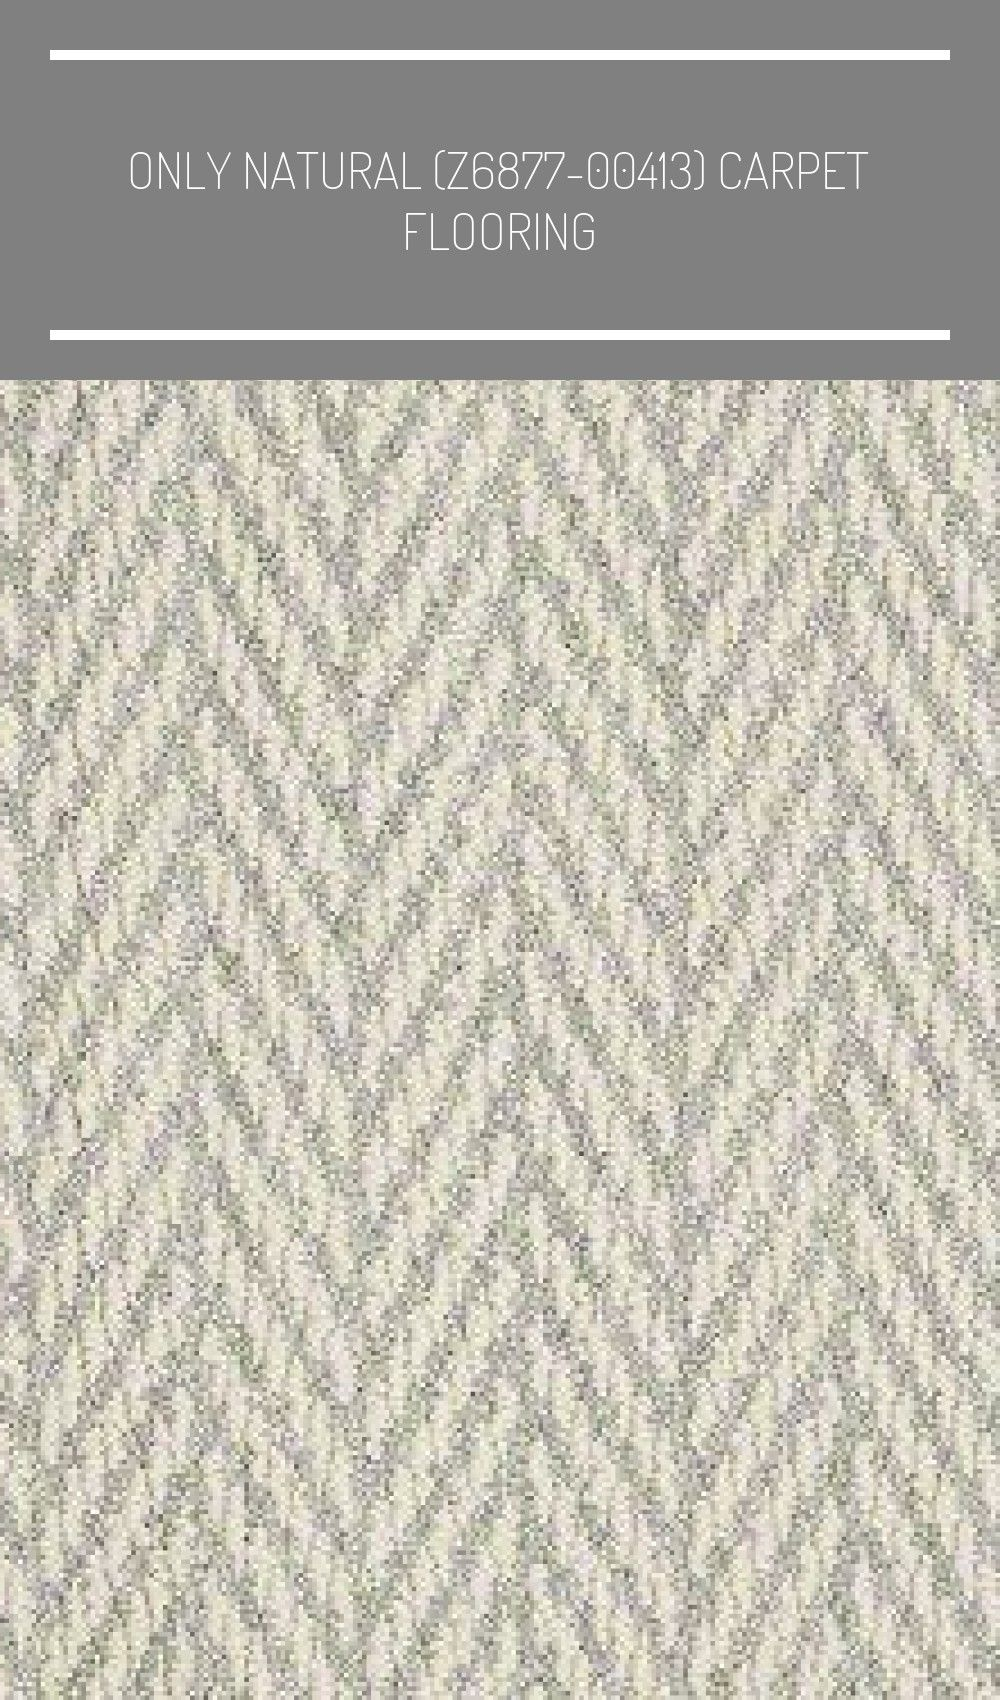 Berber Carpet Bedroom Wall Colors Only Natural Z6877 00413 Carpet Flooring Anderson Tuftex In 2020 Bedroom Carpet Carpet Flooring Bedroom Wall Colors